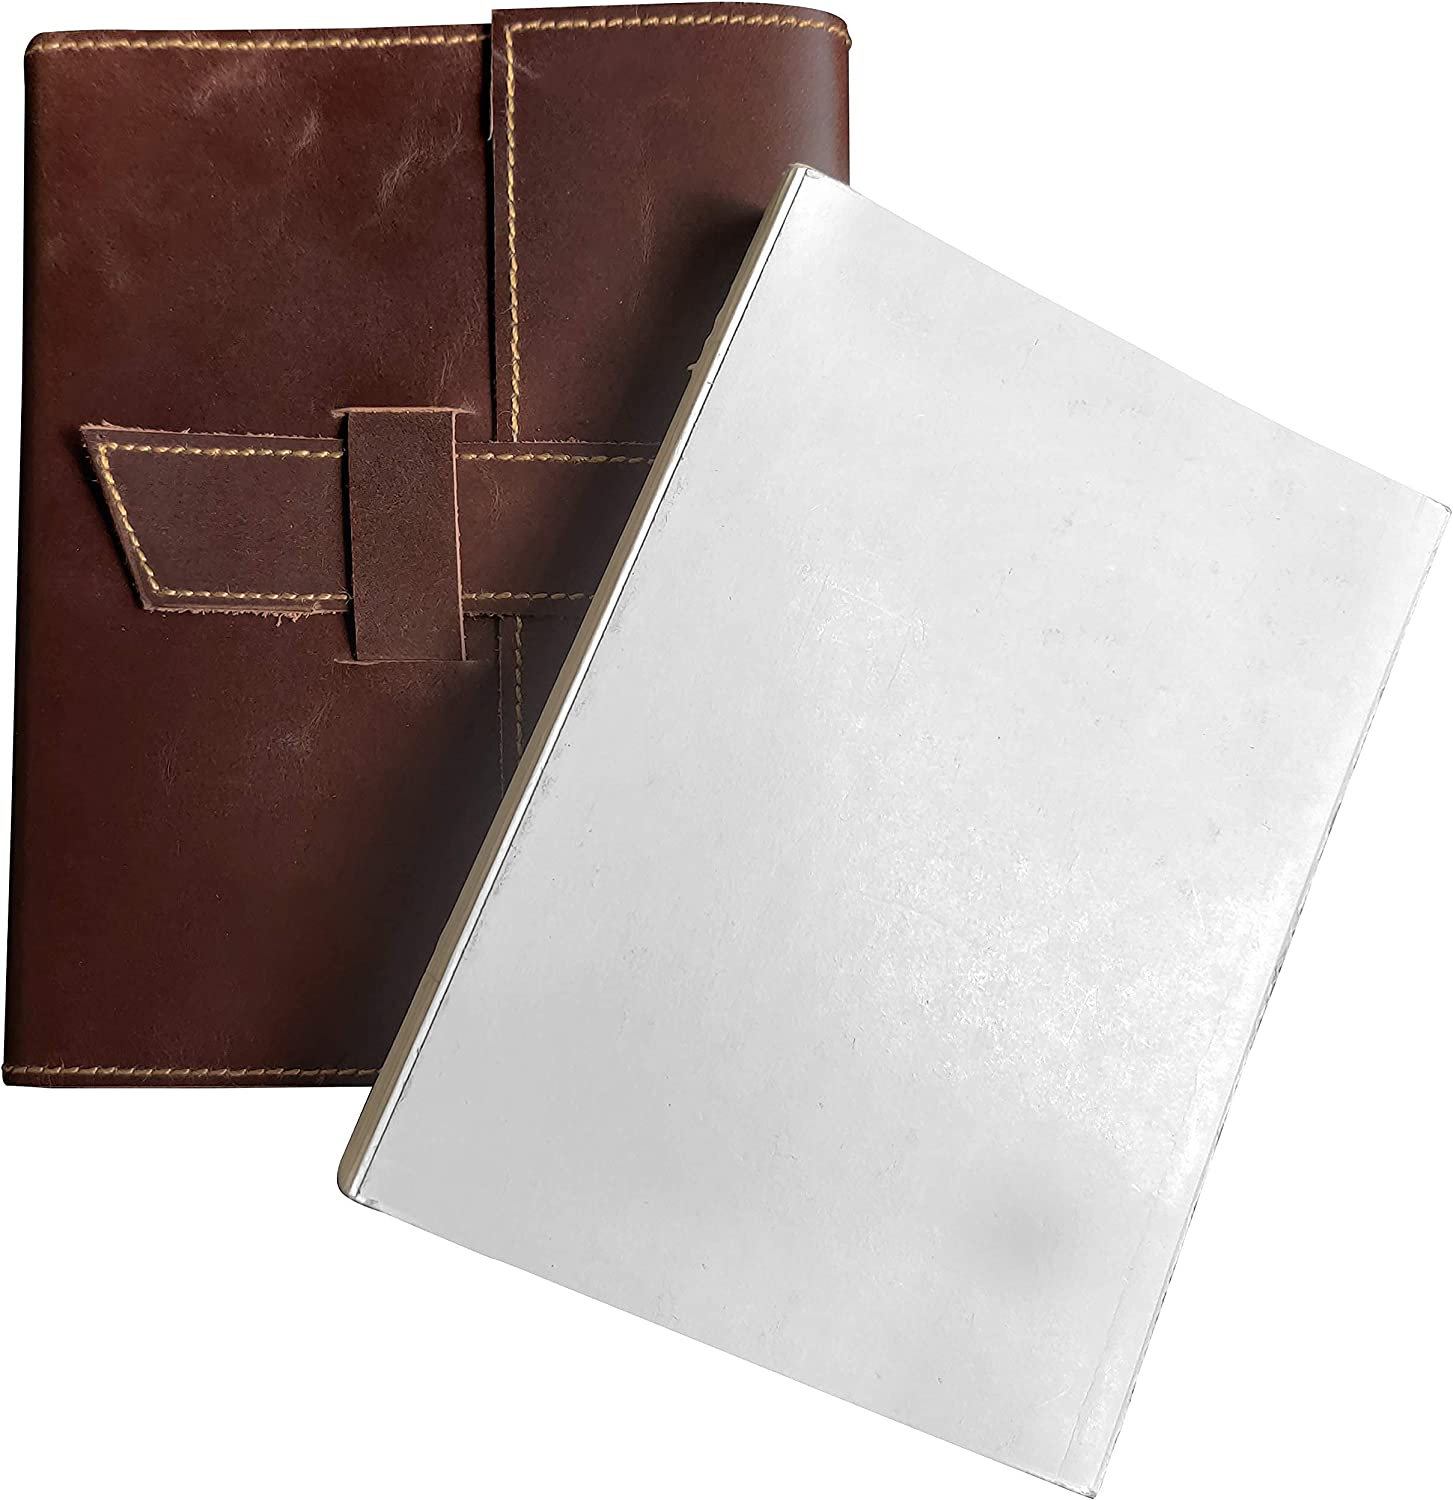 Leather Jorunal and Ranking TOP1 Refill Limited time for free shipping Combo Refillable for Leat - A5